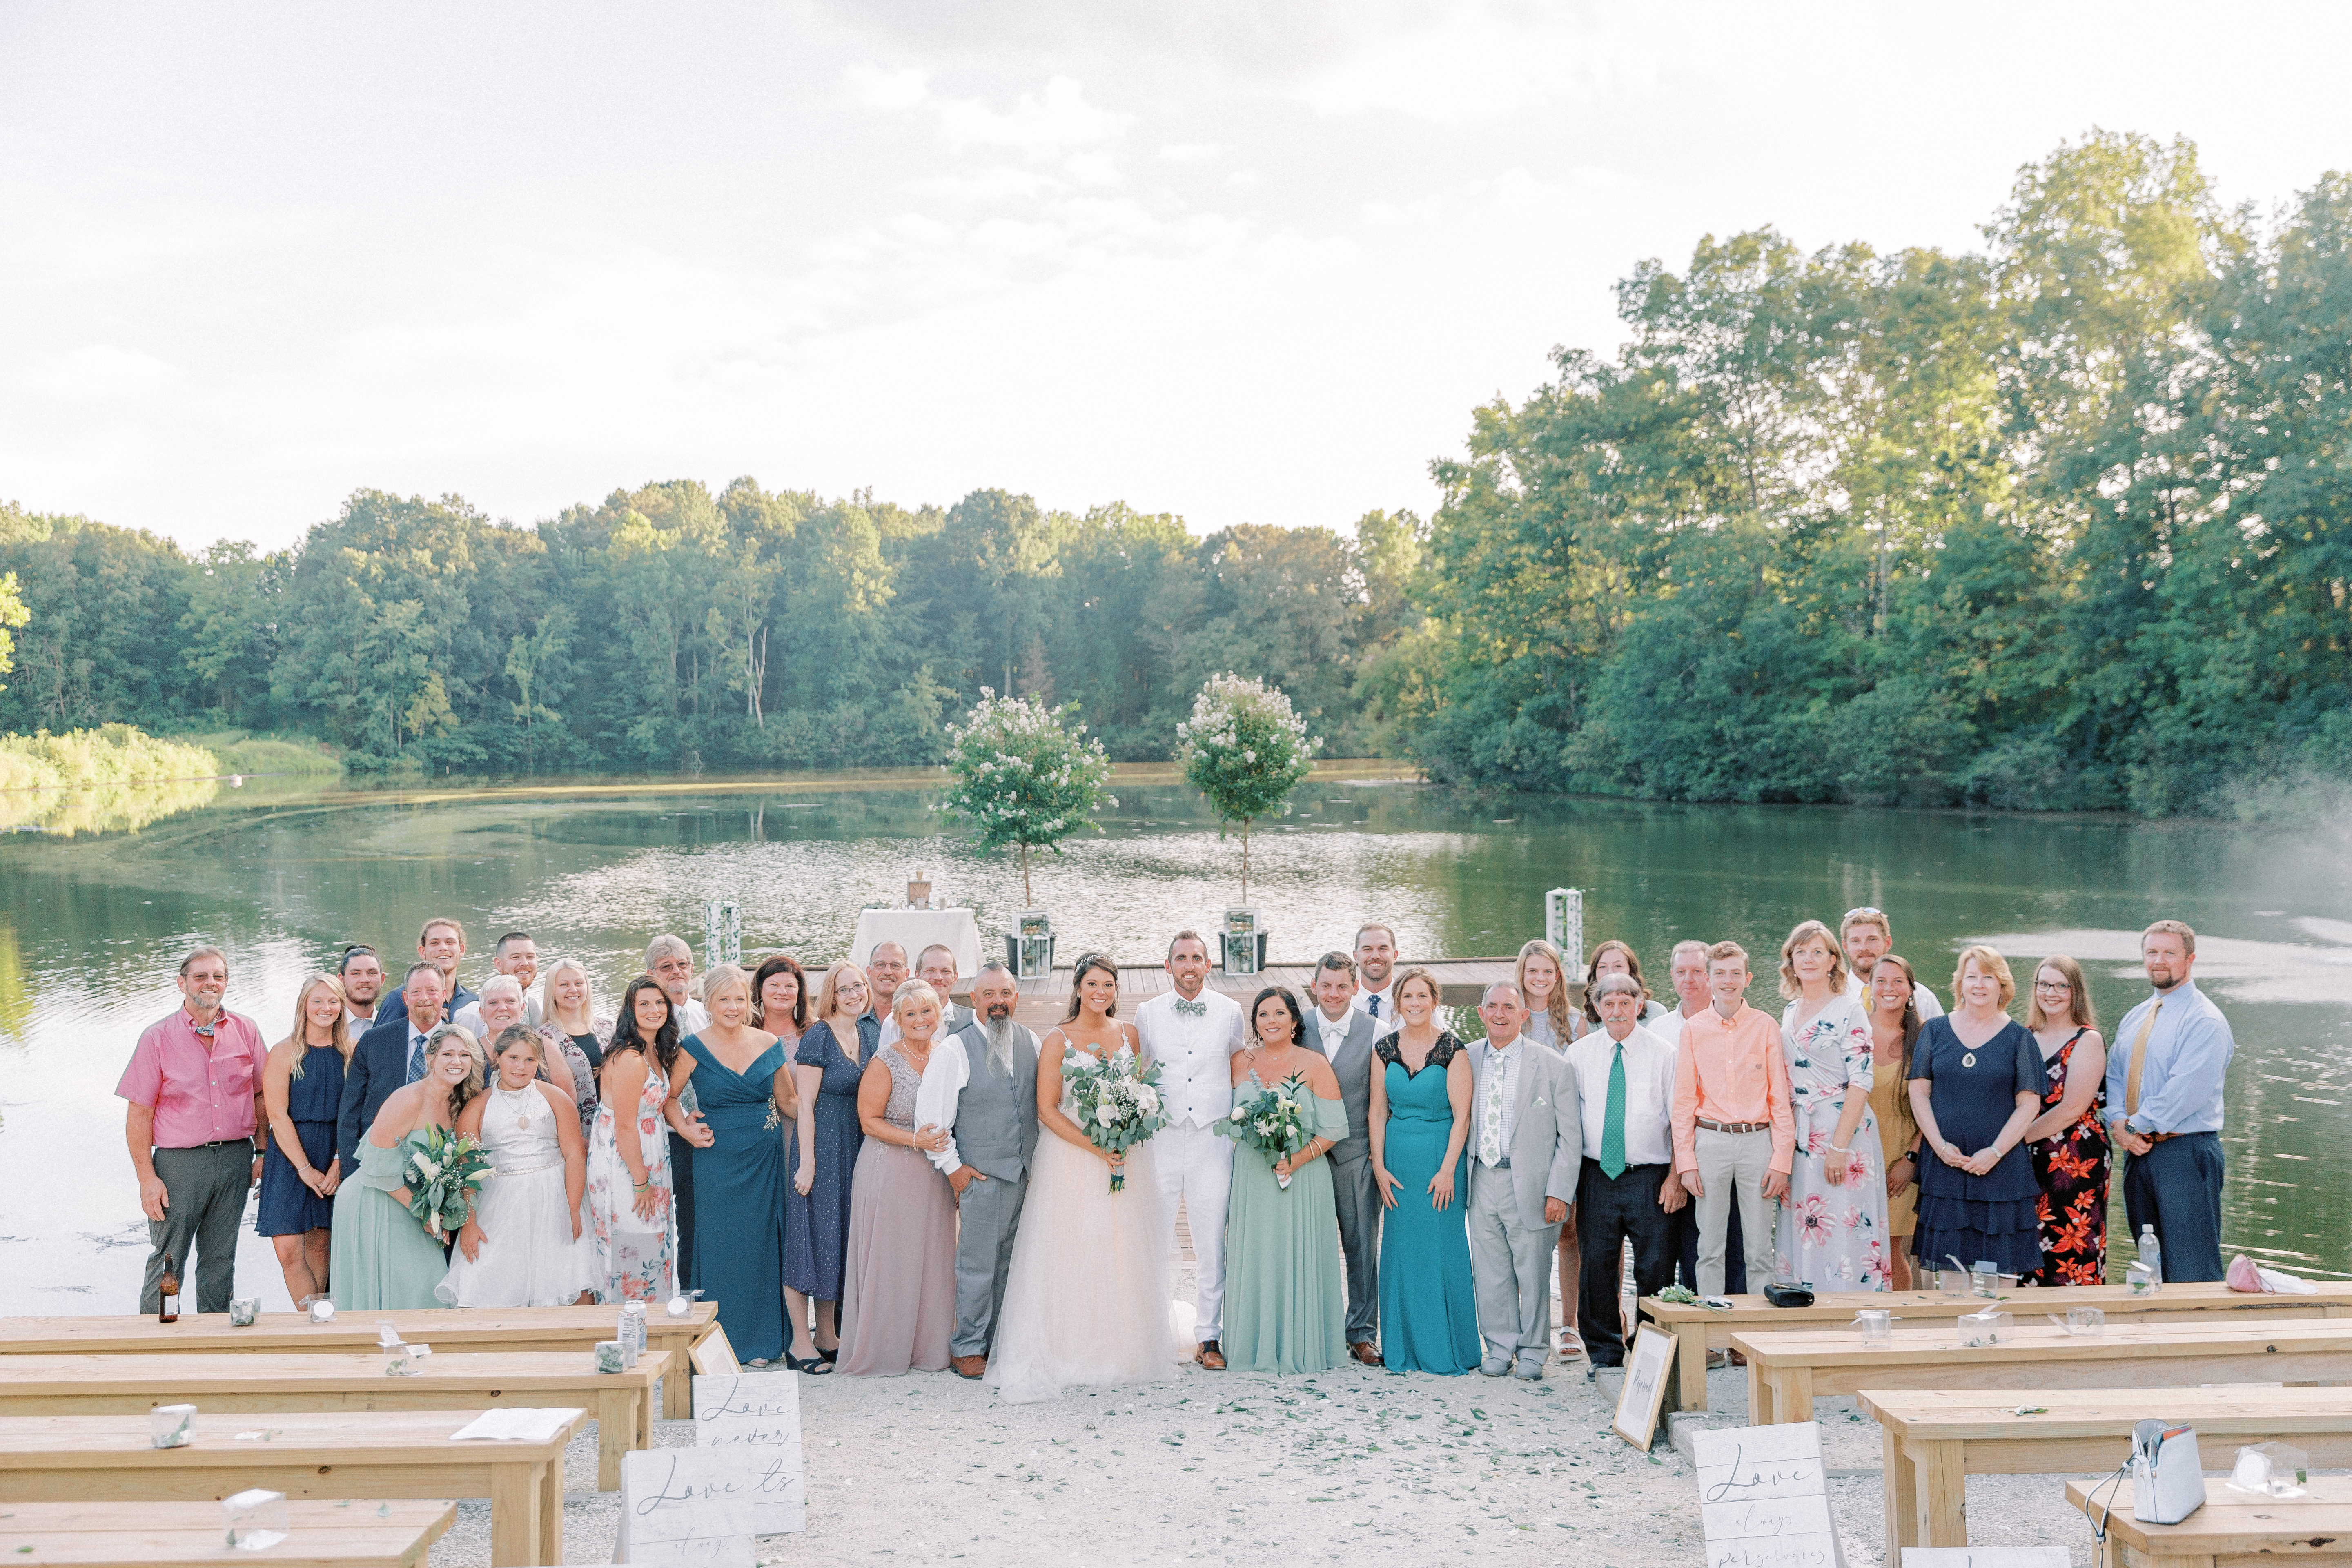 Large extended family photo on wedding day, wedding on a lake, lake wedding, pavilion wedding